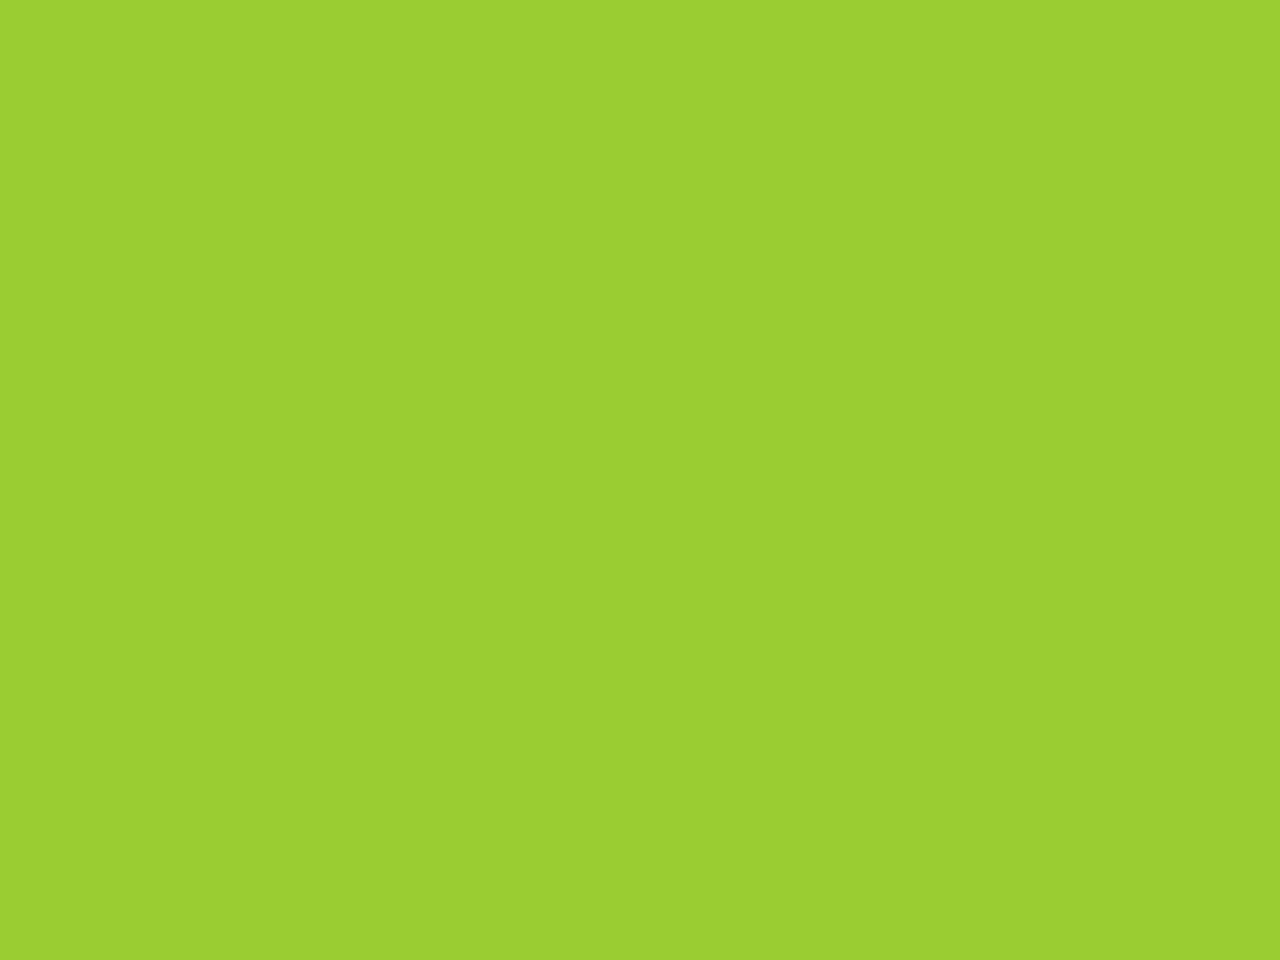 1280x960 Yellow-green Solid Color Background